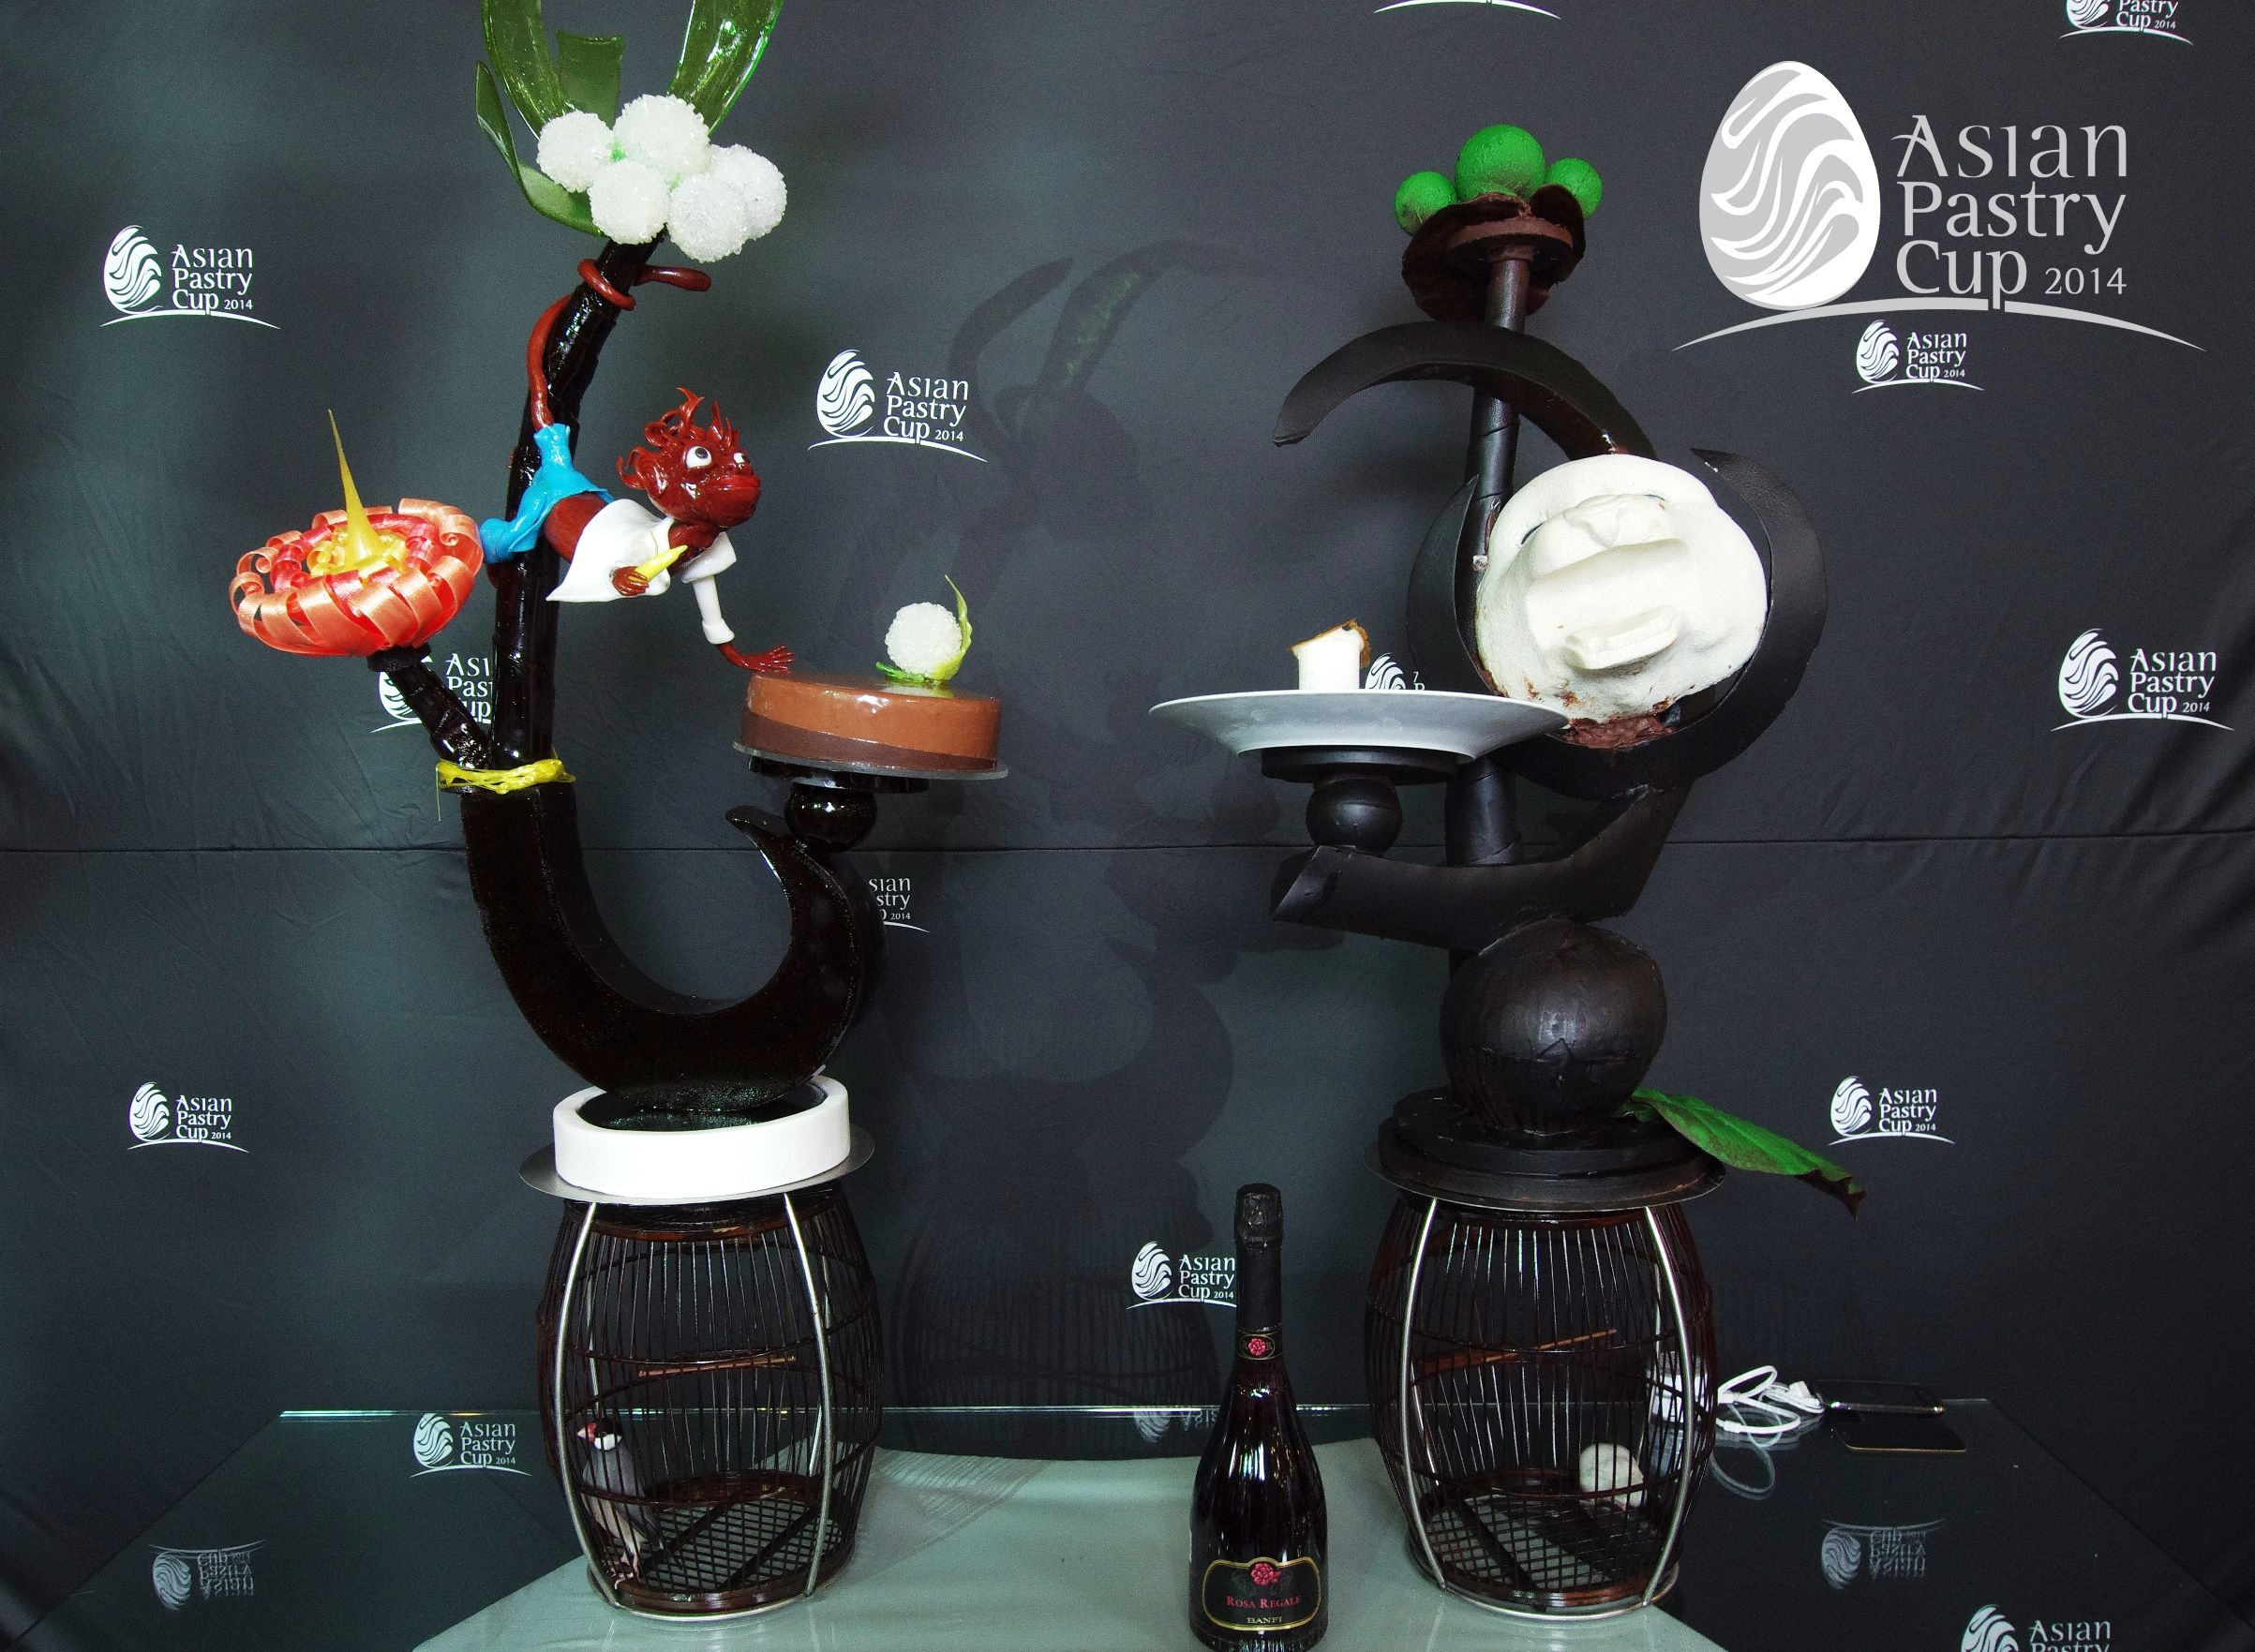 ASIAN PASTRY CUP 2014 : Official Buffet - Indonesia